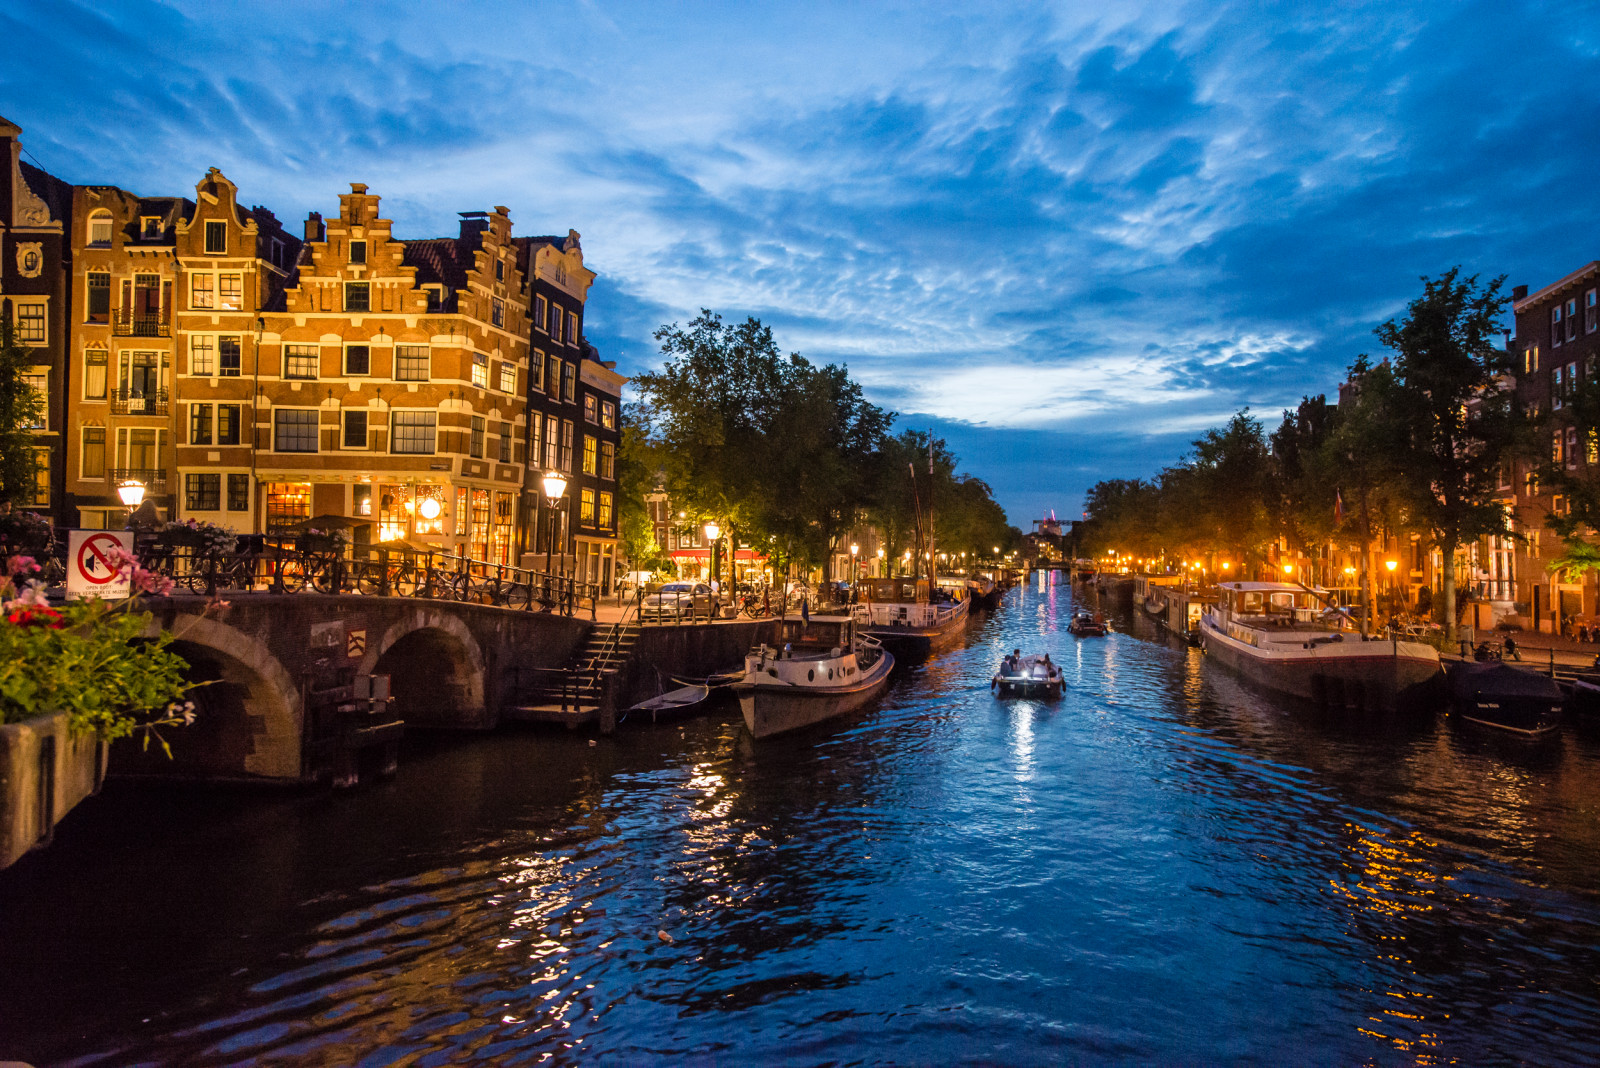 Amsterdam Photo Tour boats on canals